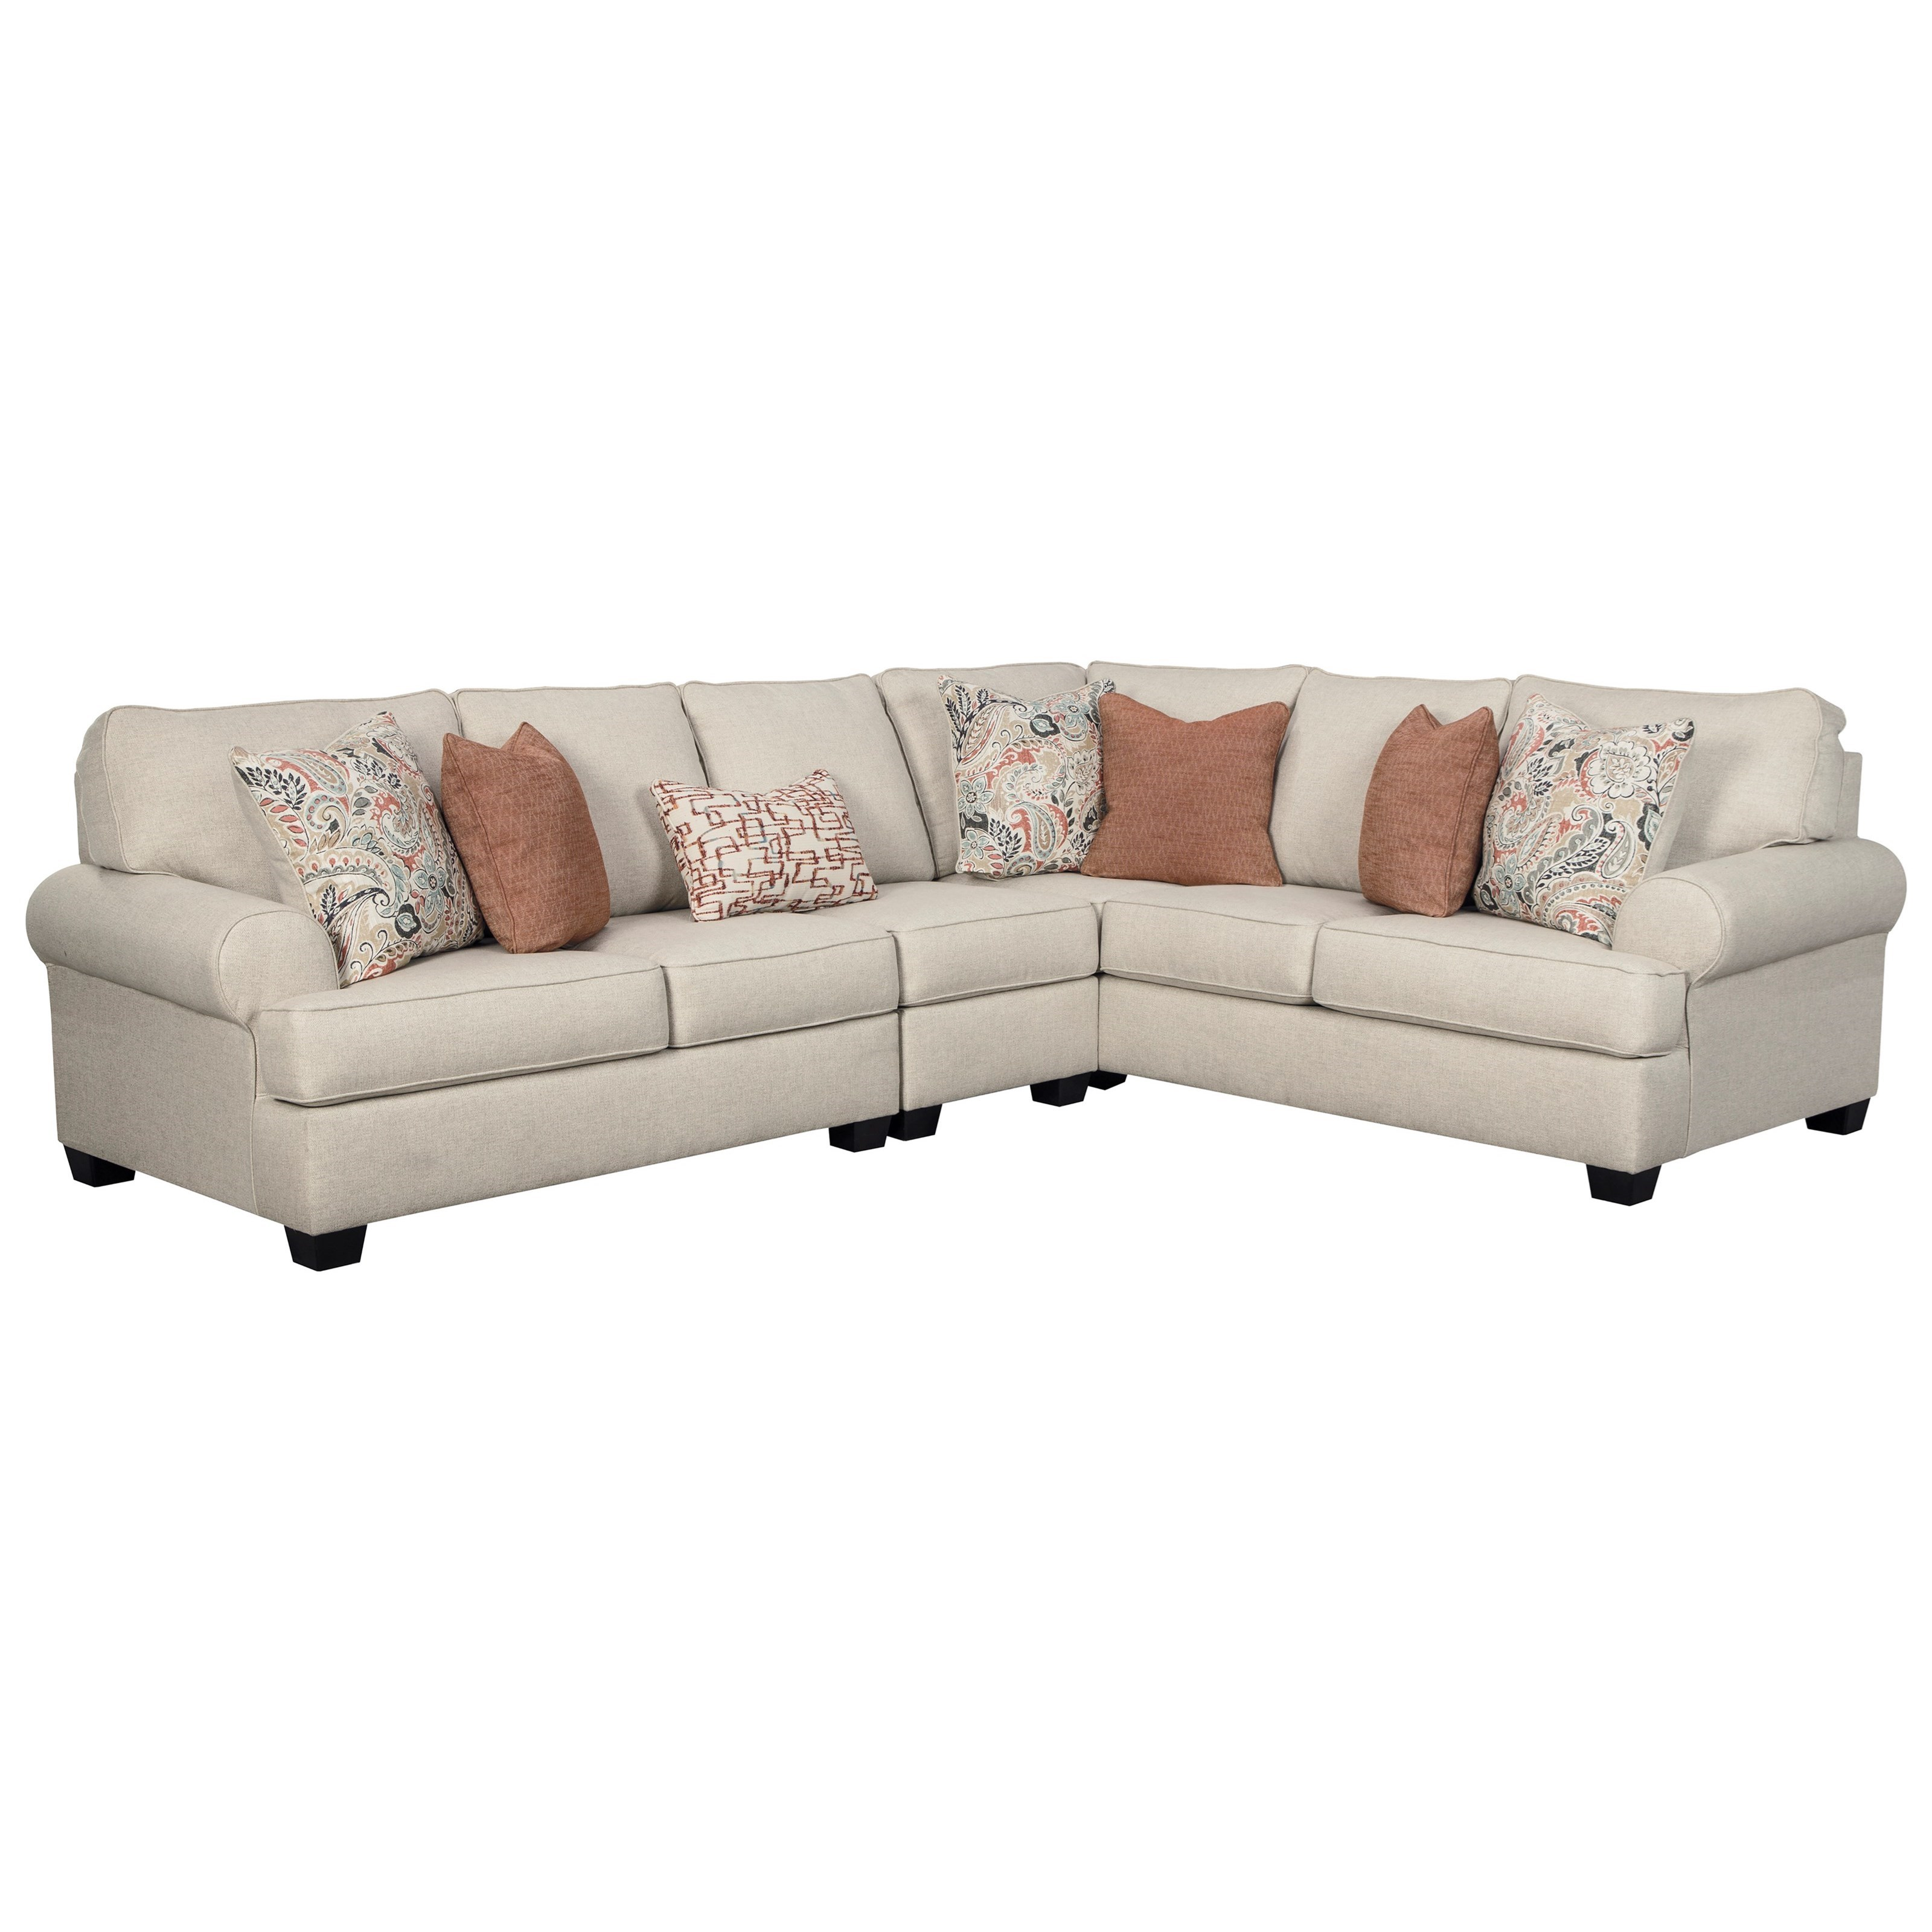 Amici 3-Piece Sectional by Signature Design by Ashley at Beds N Stuff